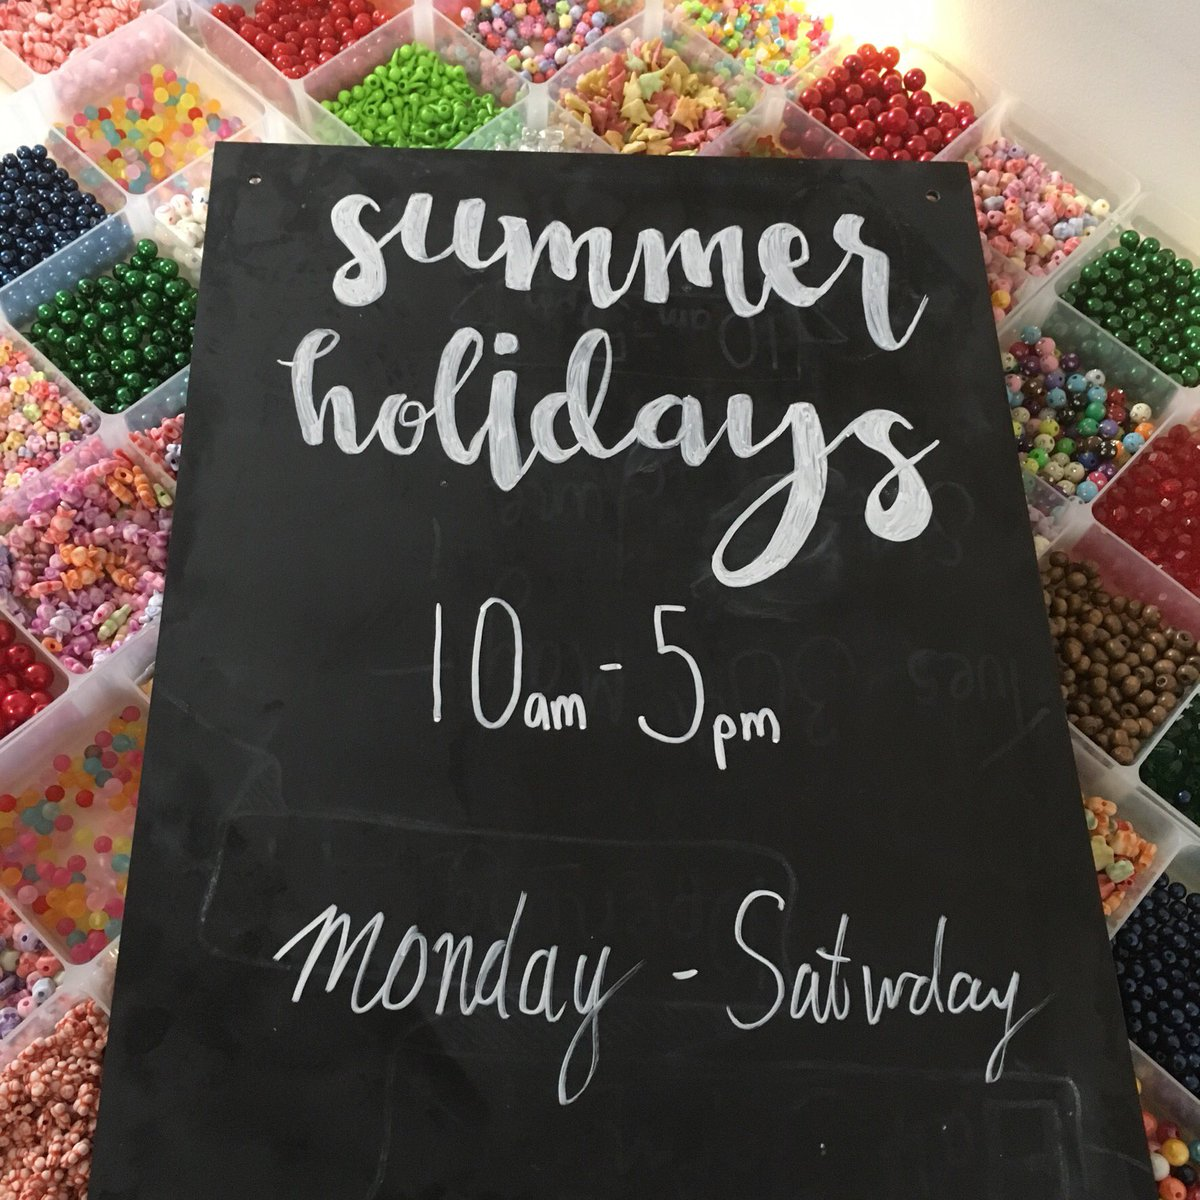 School holidays = Rainy days  Bead Bar open 10-5 Mon-Sat with a FREE cuppa!! #kids #craft #jewellery #bead #harrogate<br>http://pic.twitter.com/sr9nKHWxSx